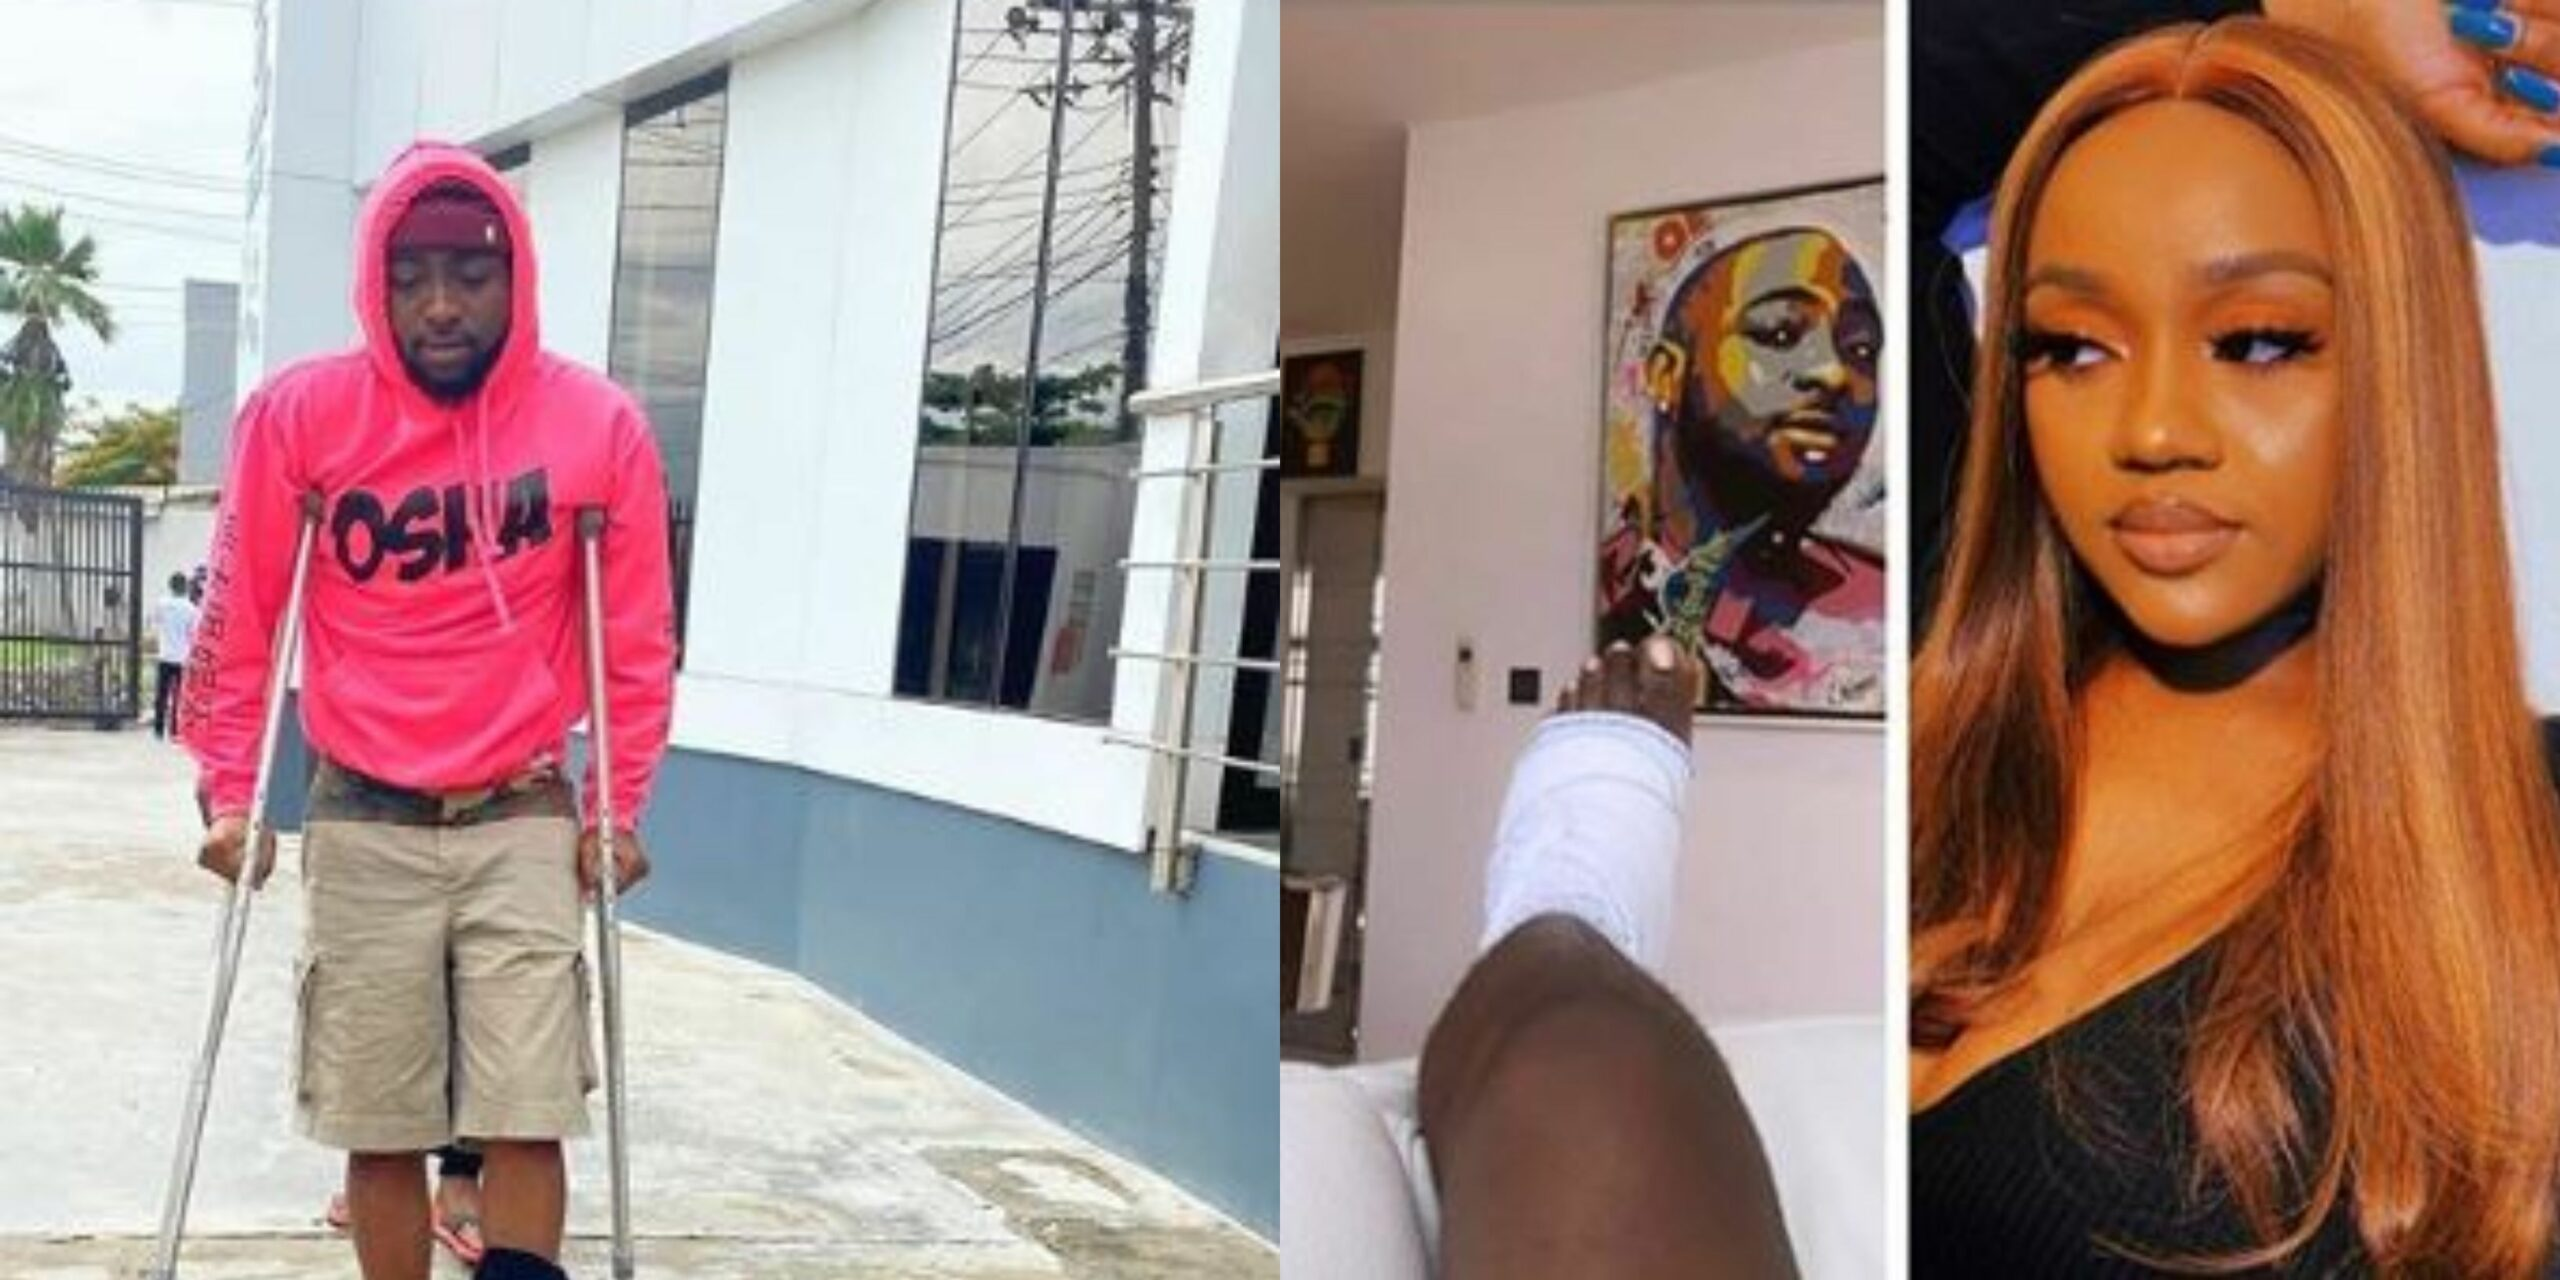 Chioma accused of inflicting injuries on Davido after finding out he cheated on her (Photos)